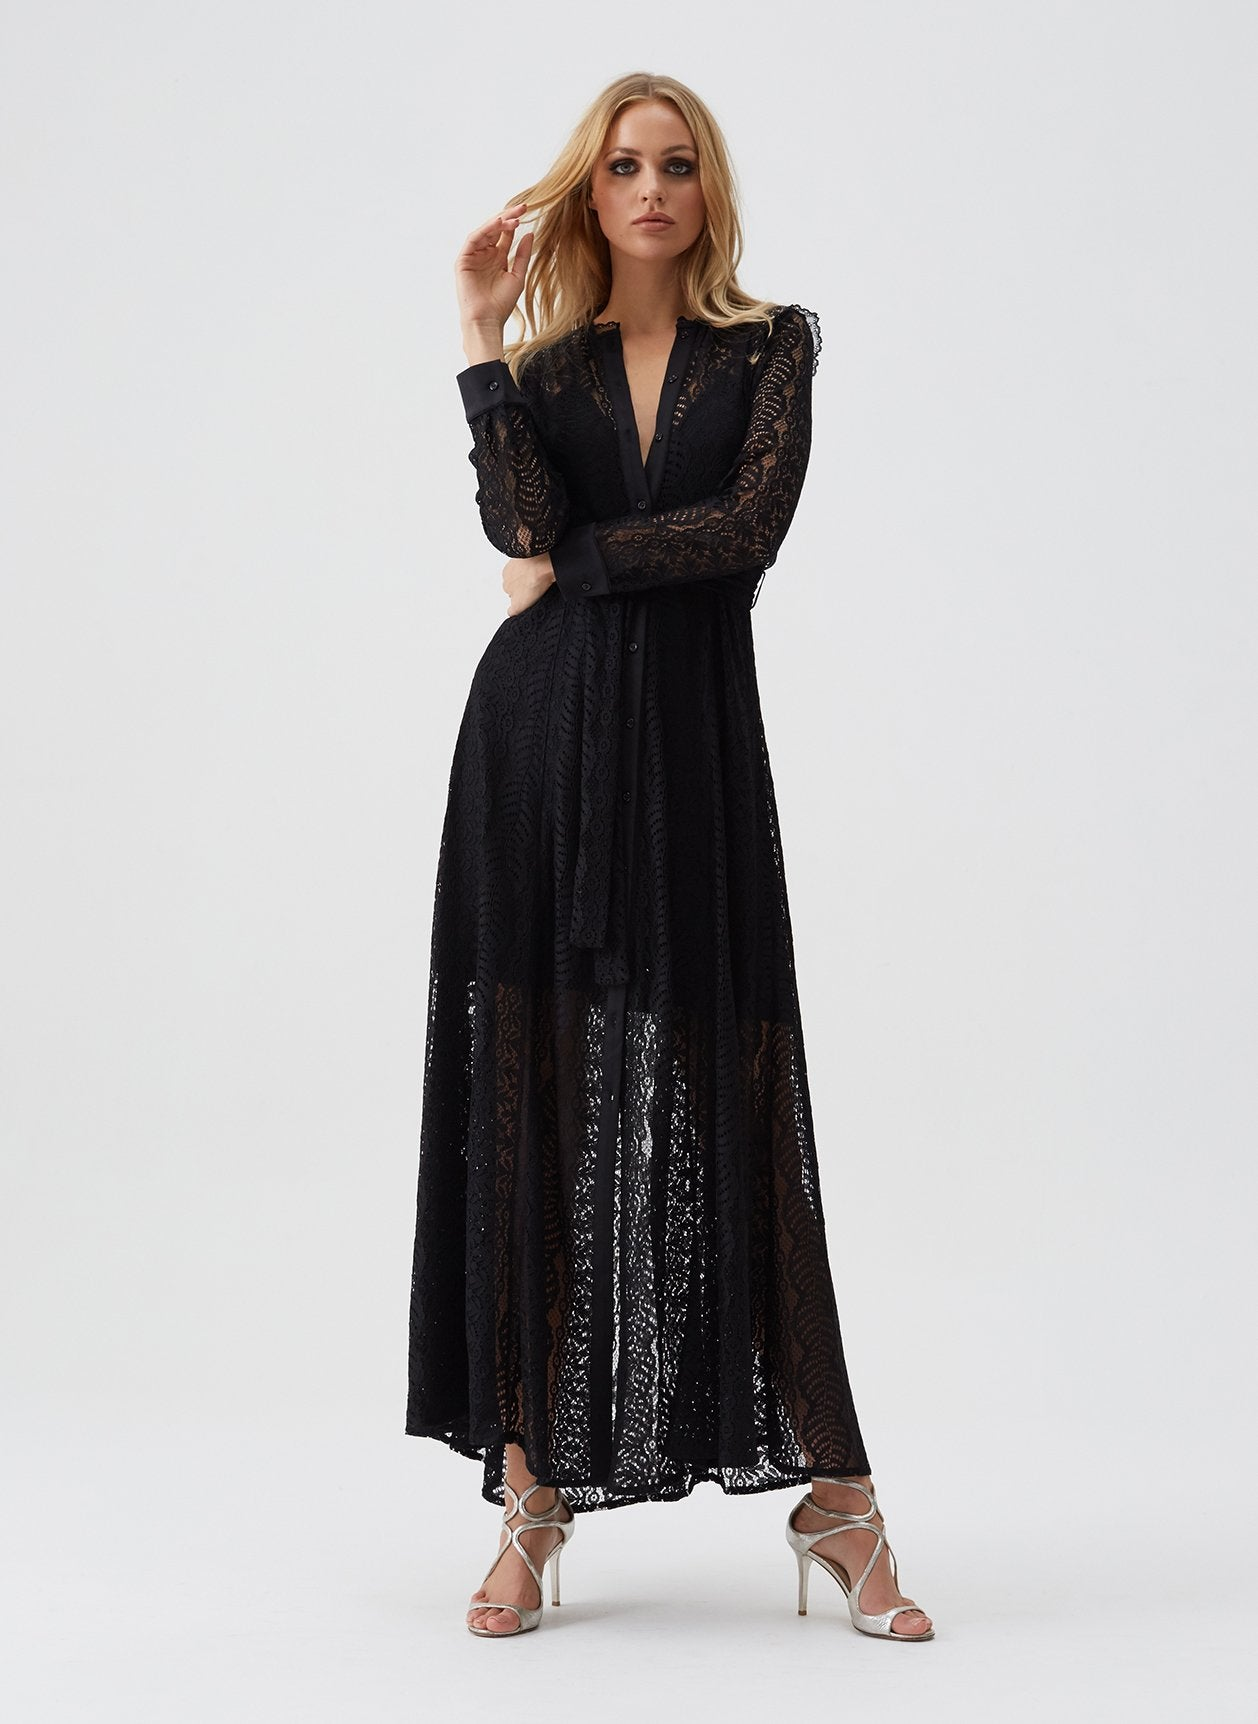 Leila Black Lace Shirt Maxi Dress